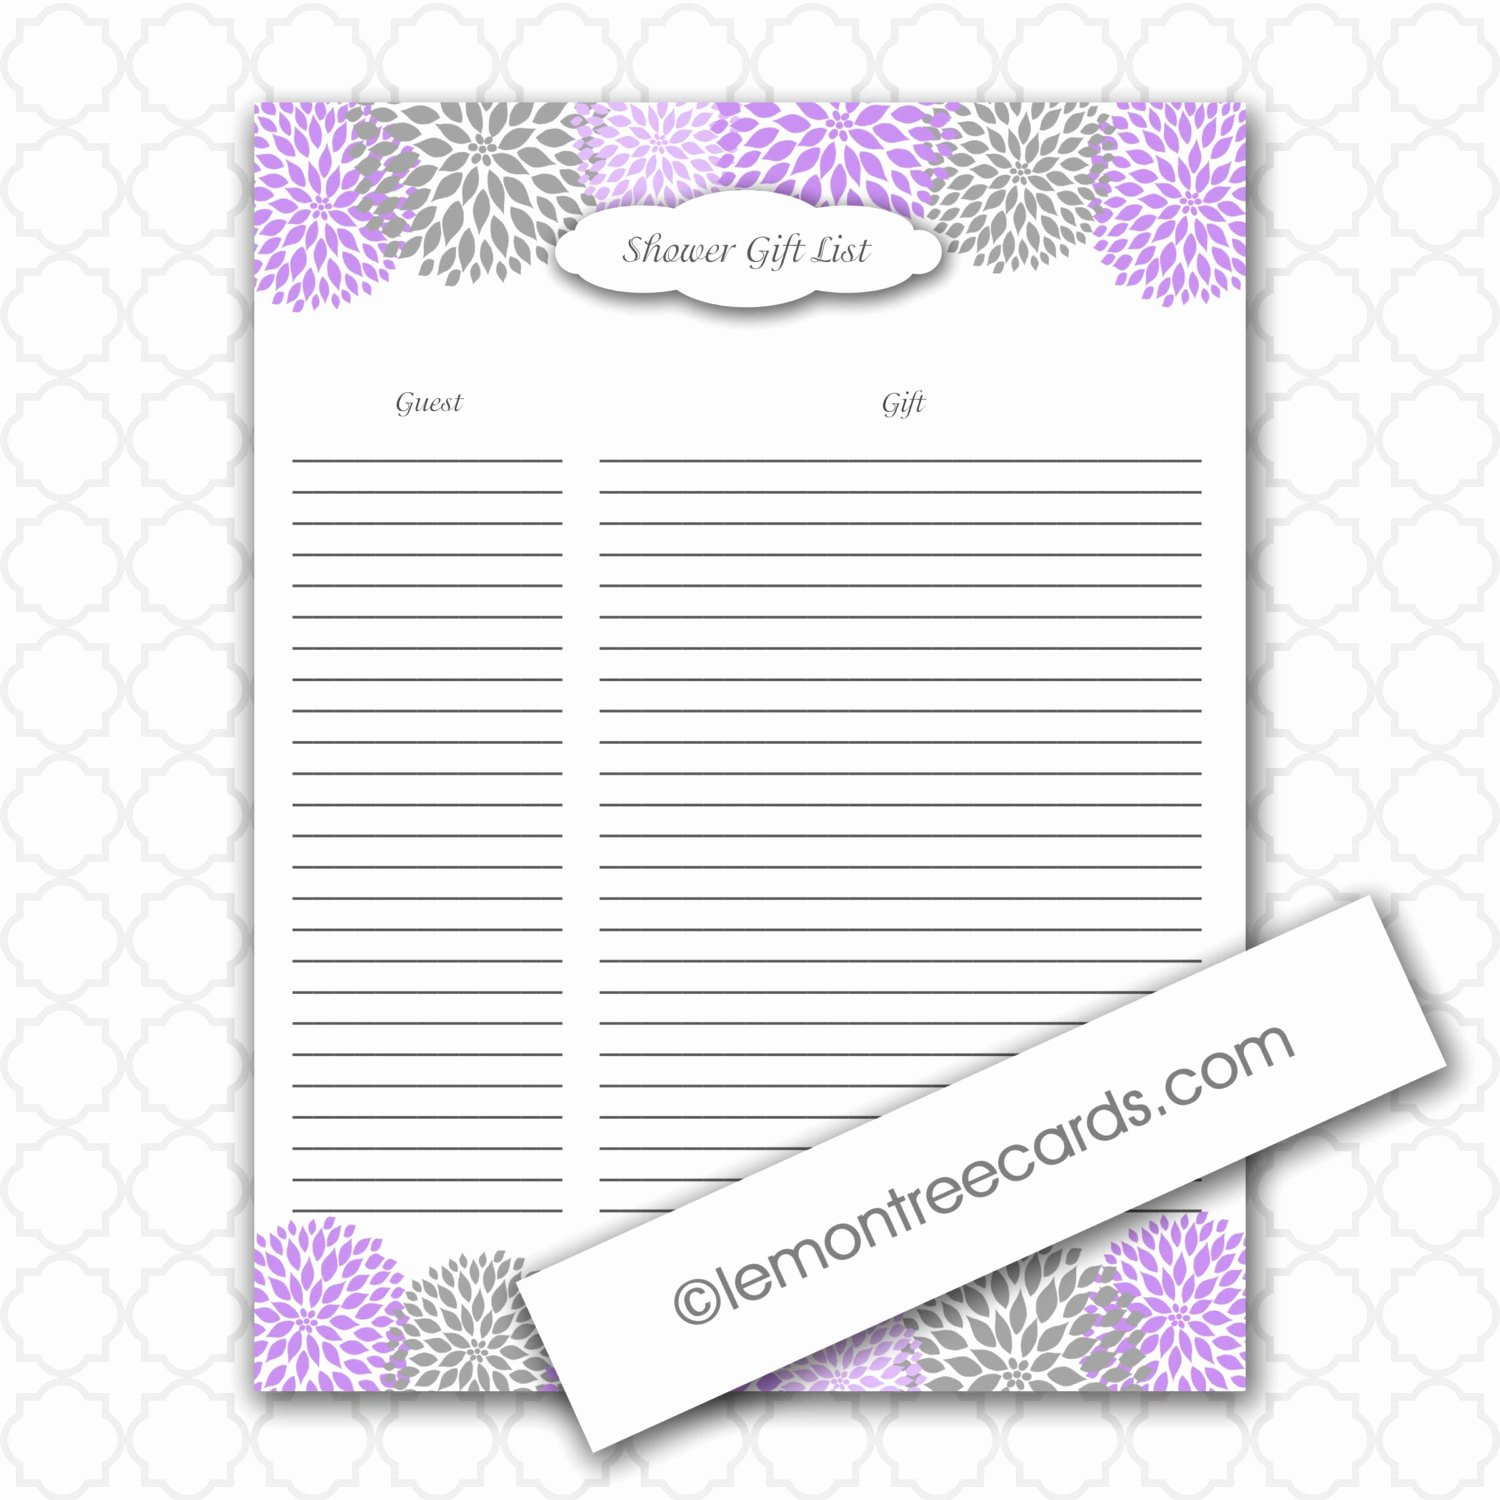 Baby Shower Gift List Template Lovely Lavender Bridal or Baby Shower Gift List Instant